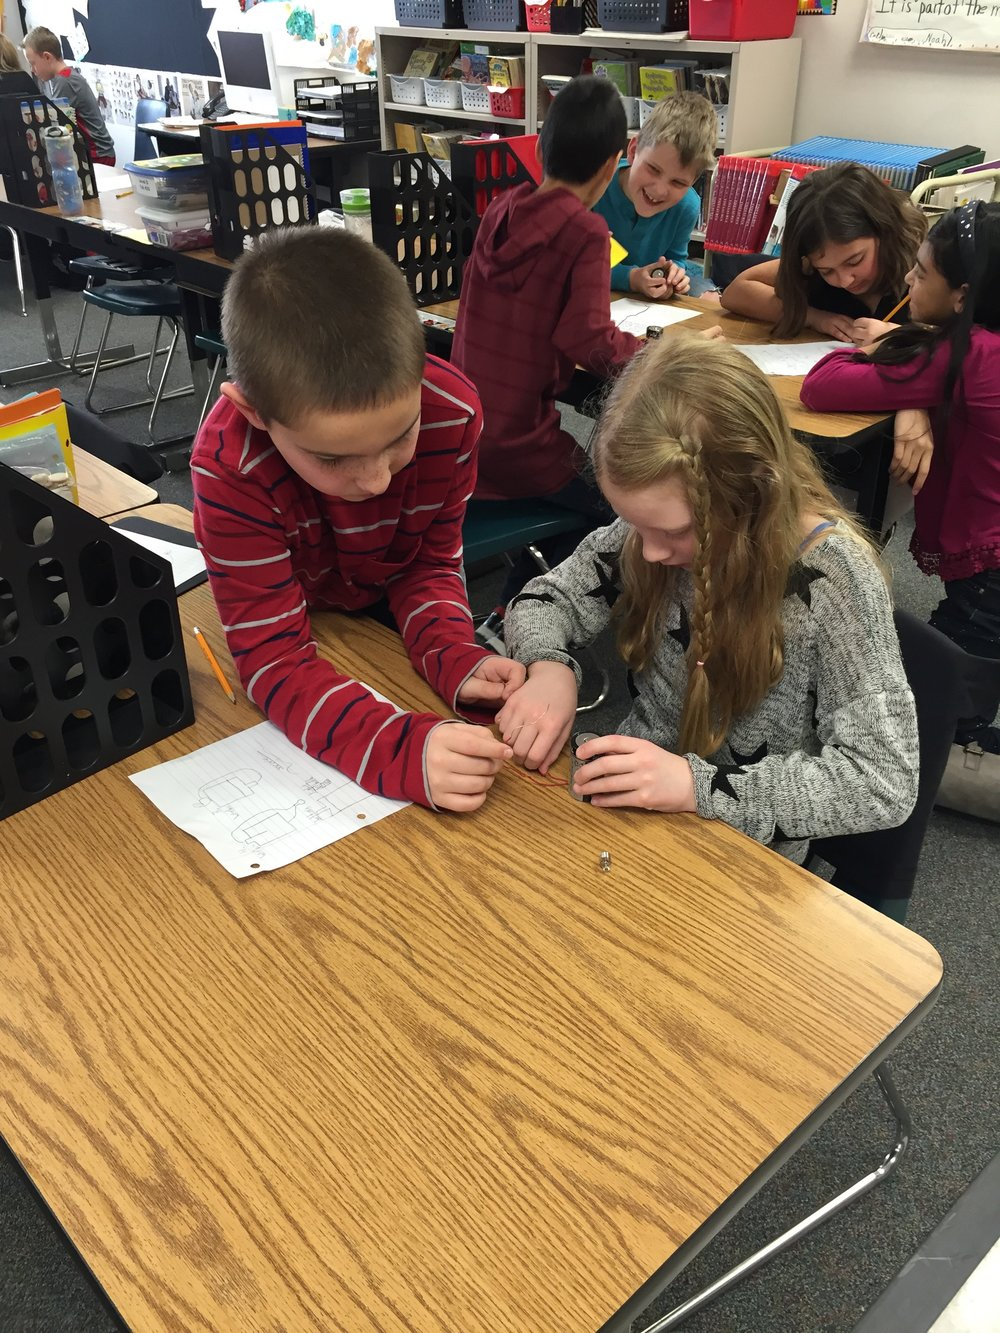 Students collaborate at an Inquiry Center - exploring the concept of Parts to Whole in science.